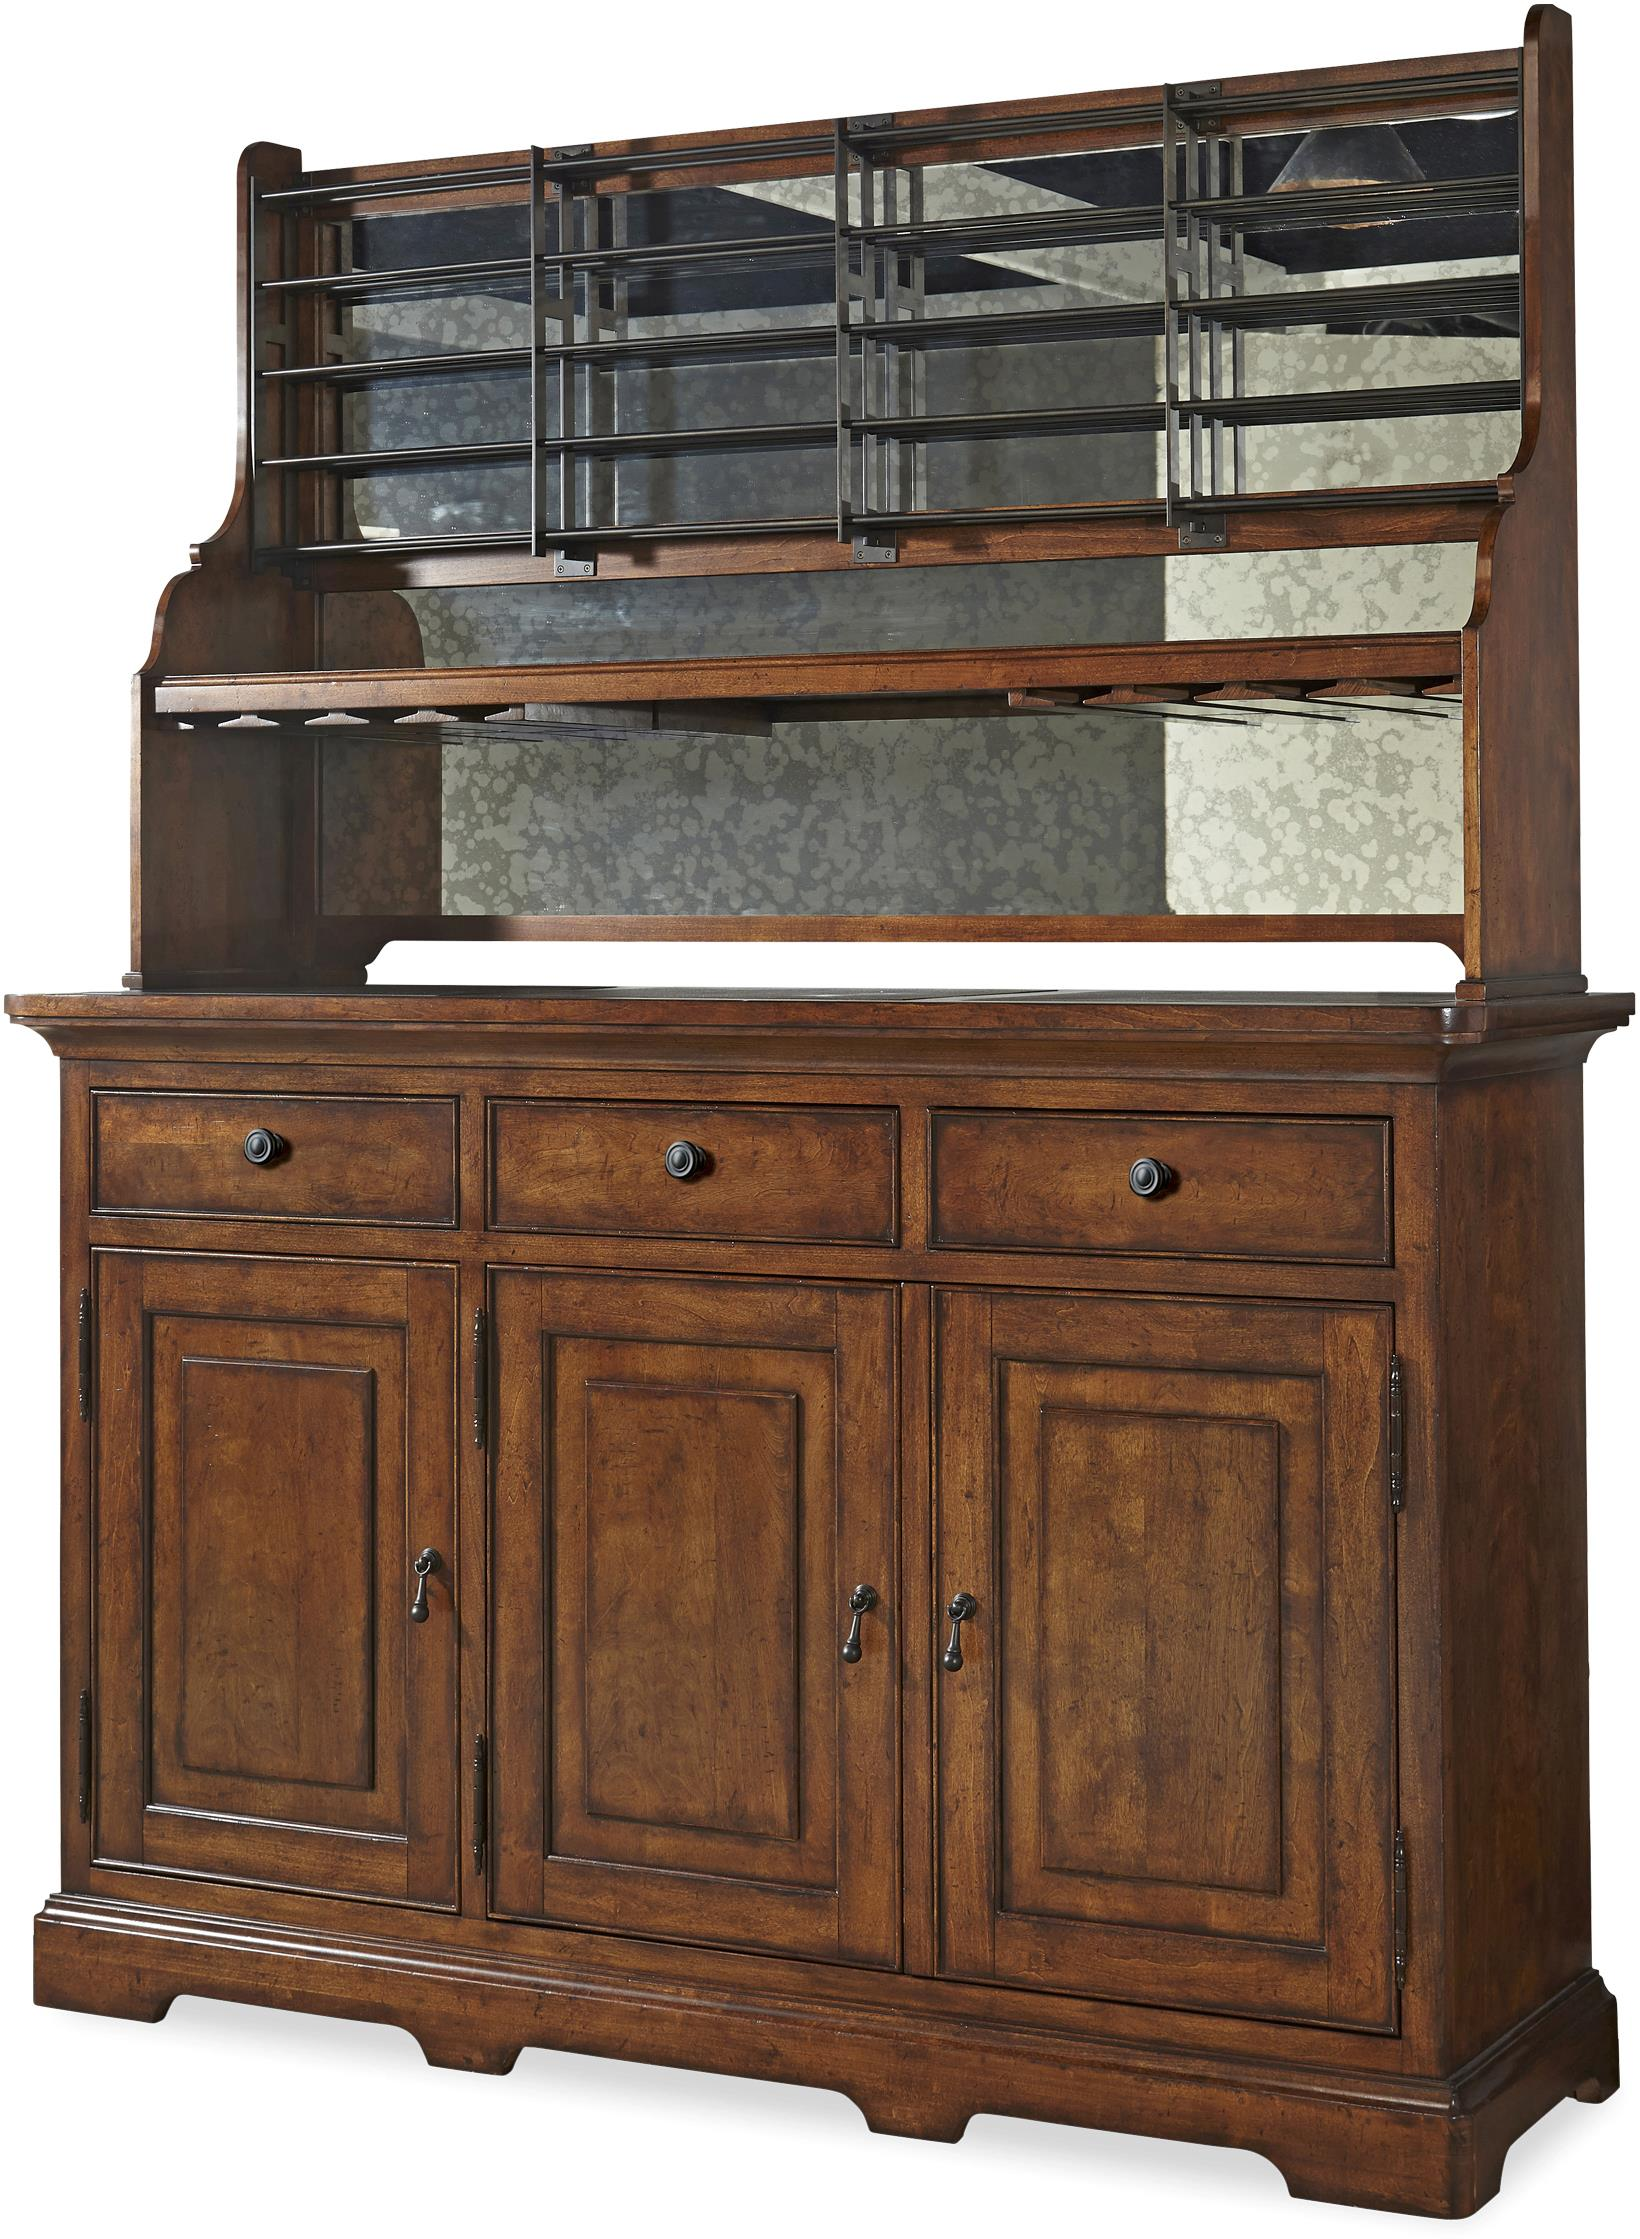 Paula Deen by Universal Dogwood Credenza with Wine Rack - Item Number: 596679C